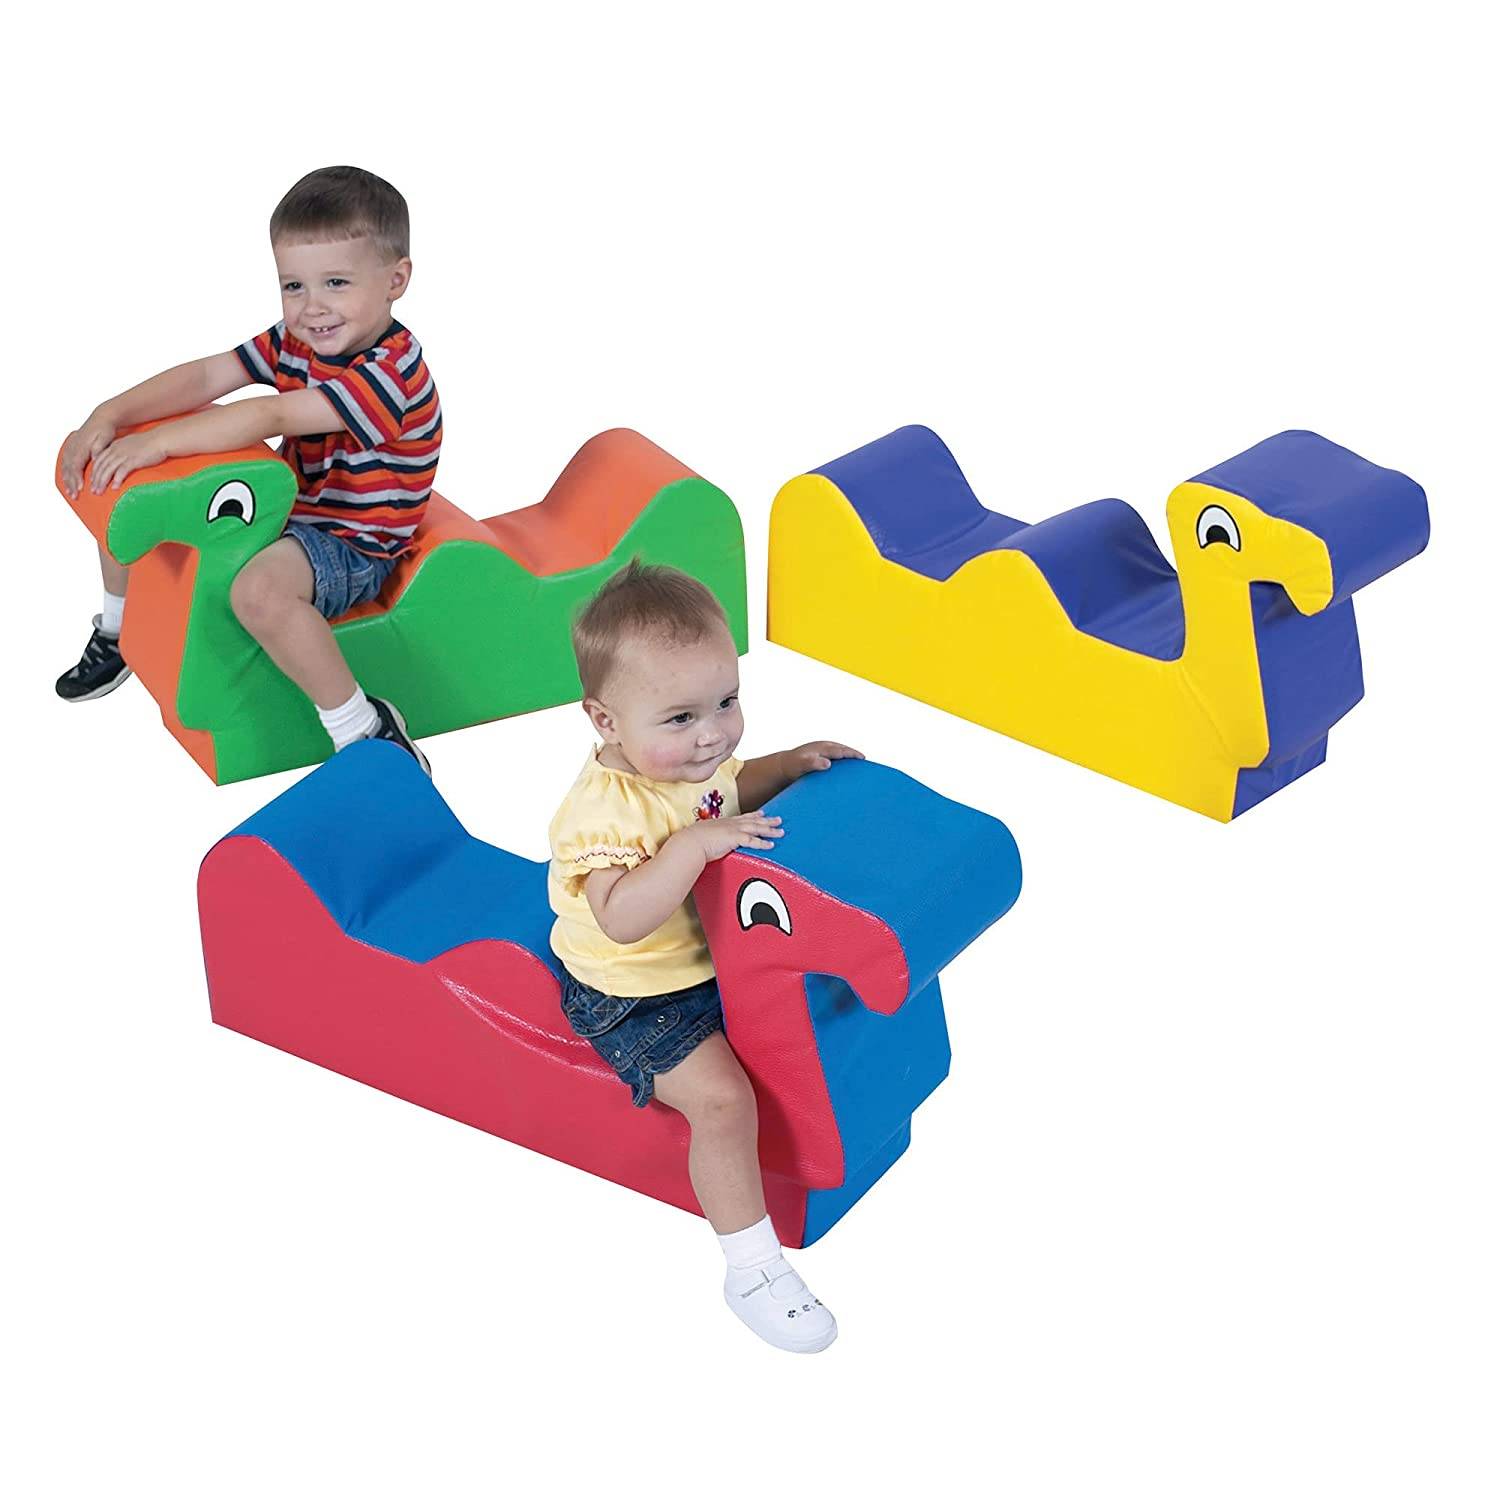 Children's Factory Nessie Family - Set of 3, Toddler/Infant Ride On Toys for 1-2 Year Old, Indoor Soft Play Equipment for Daycare/Classroom, Multi